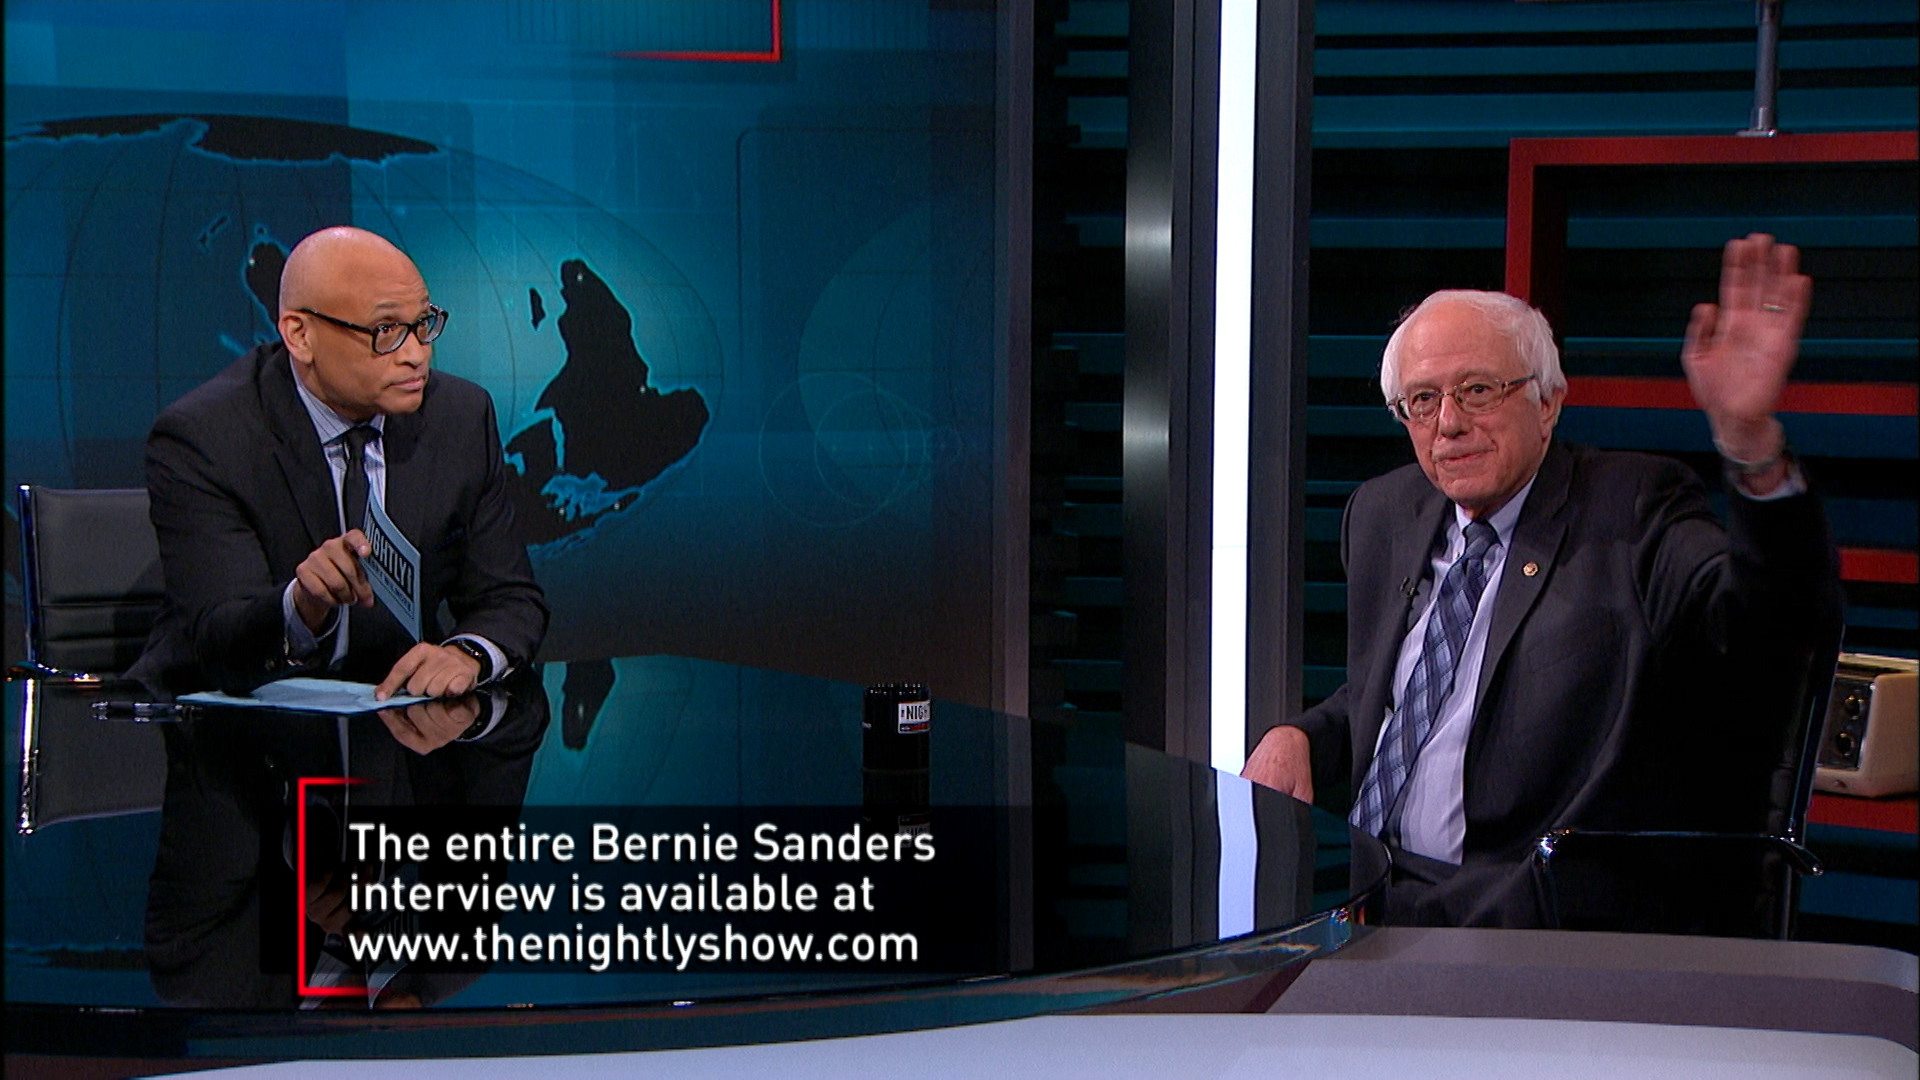 January 5, 2016 - Sexist Donald Trump & Bernie Sanders Chat